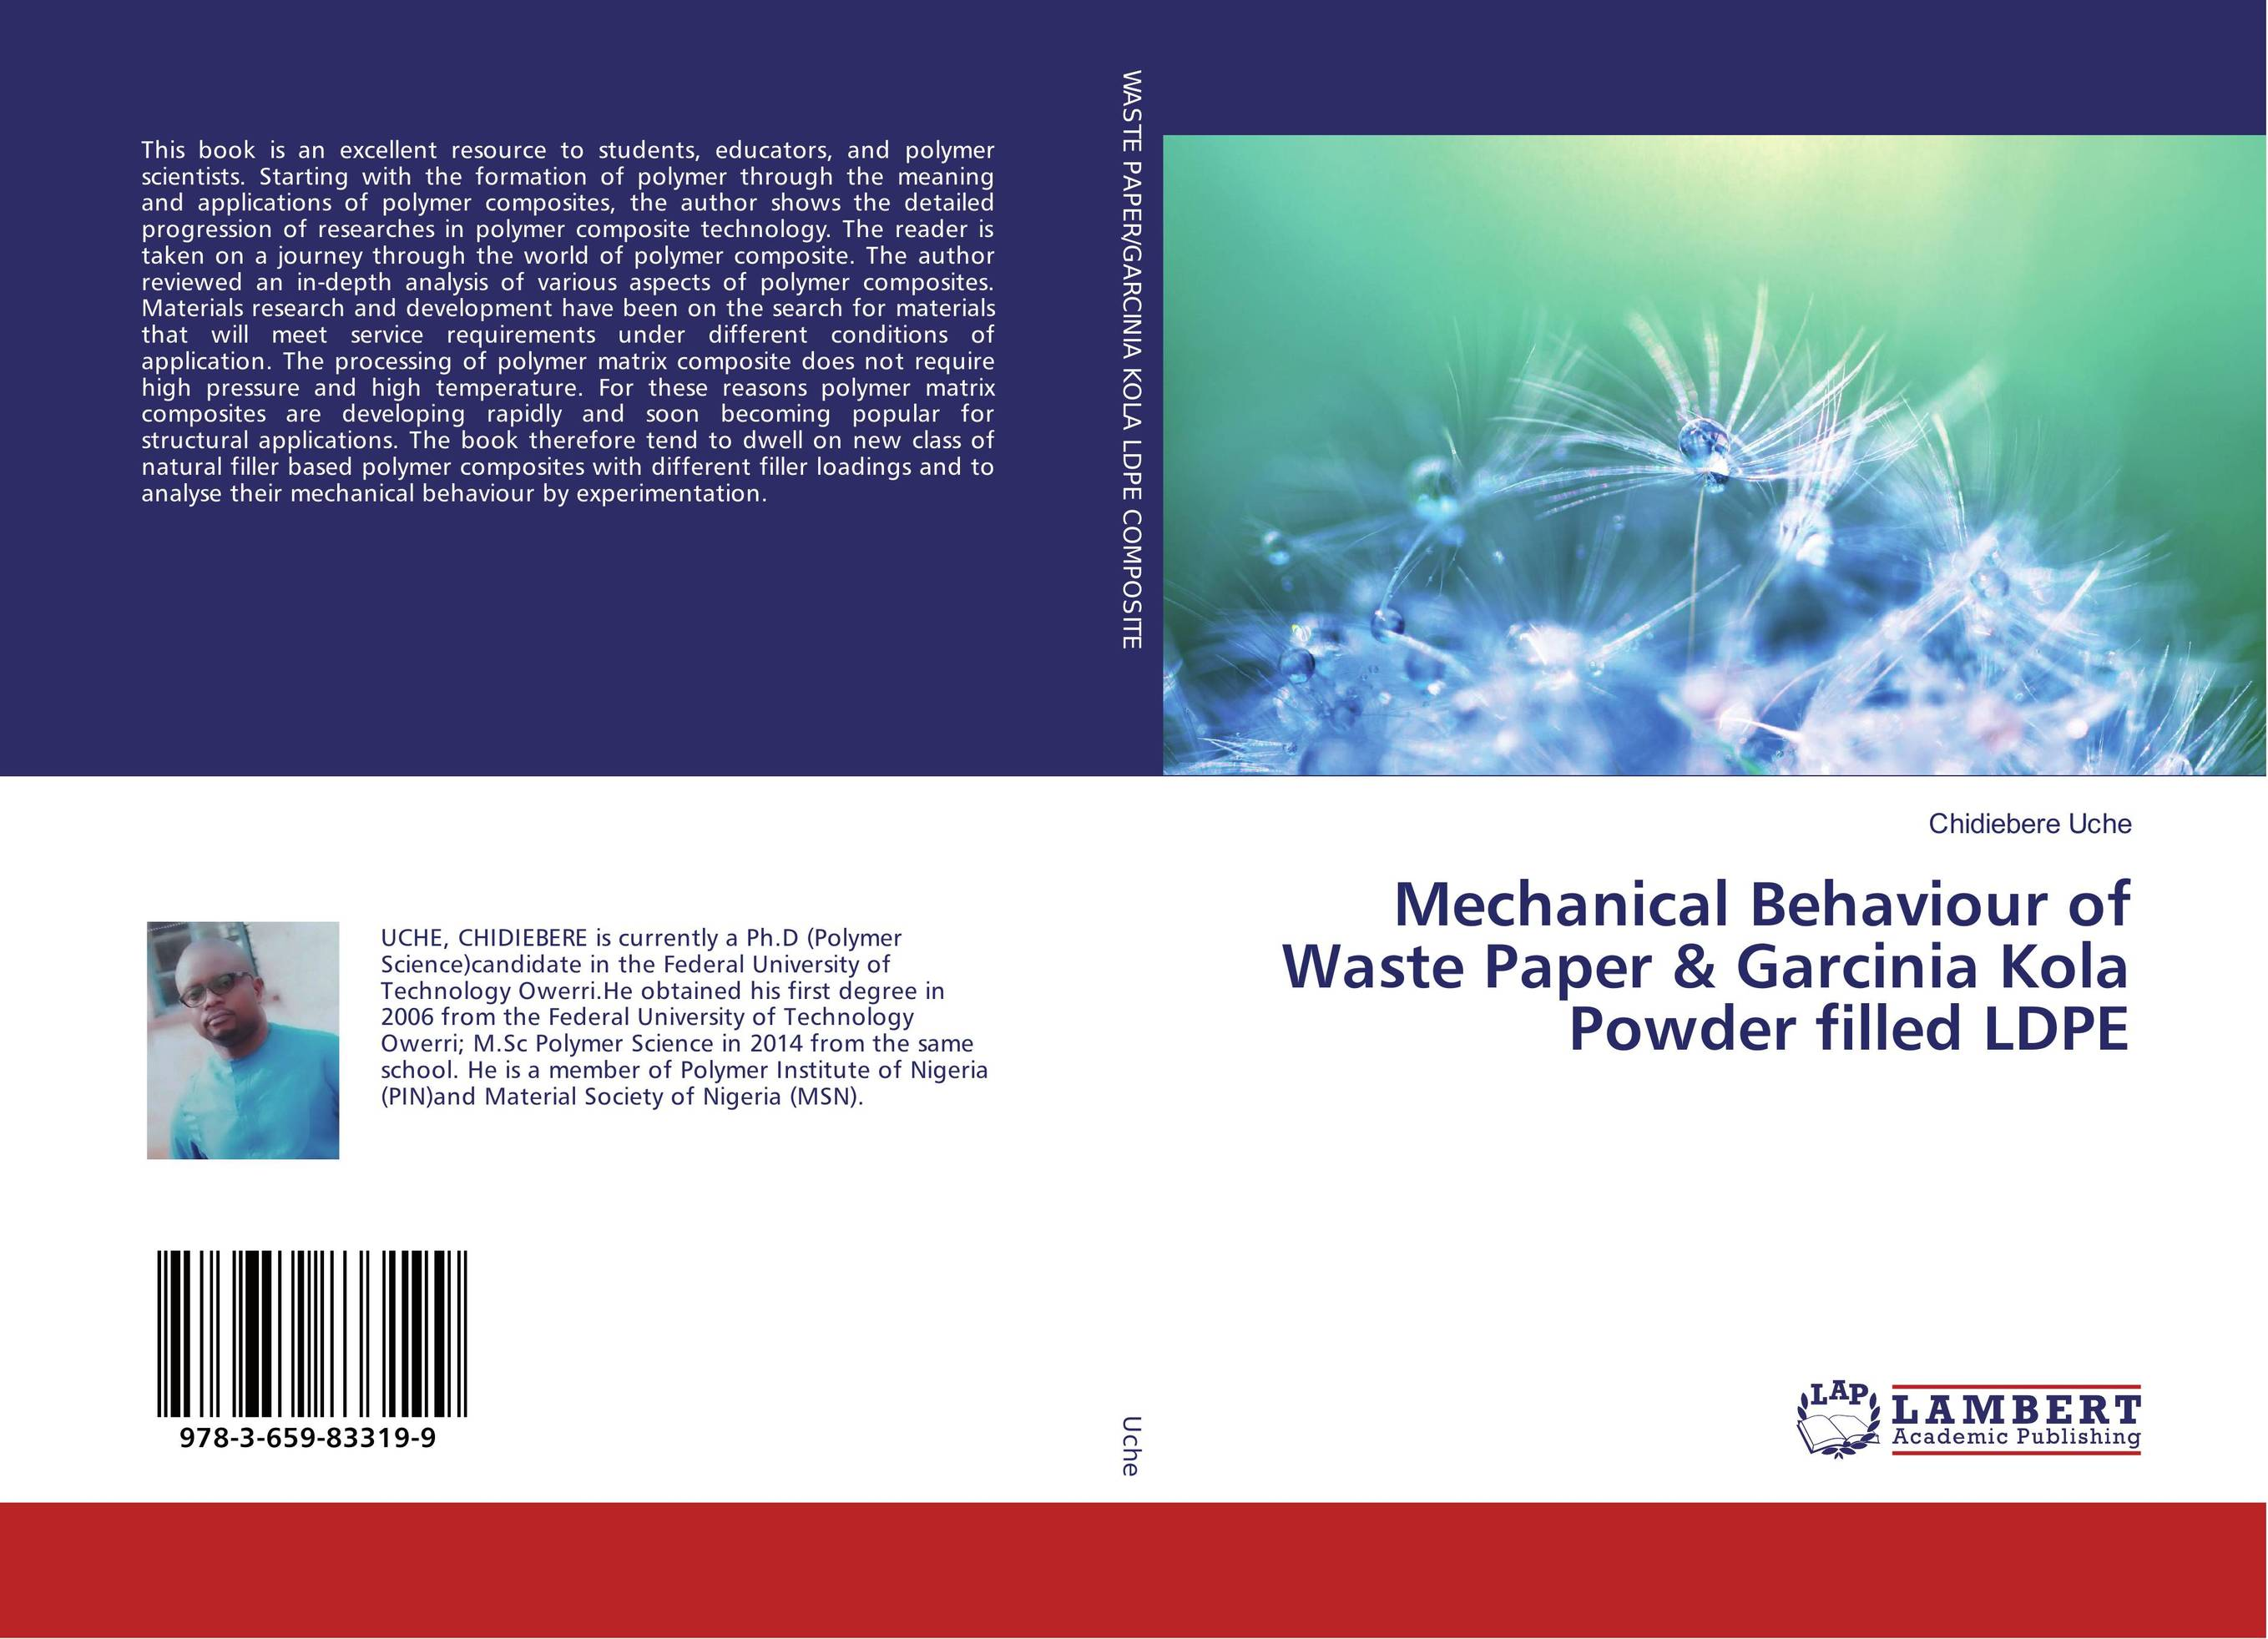 Mechanical Behaviour of Waste Paper & Garcinia Kola Powder filled LDPE polymer composites for microelectronic applications